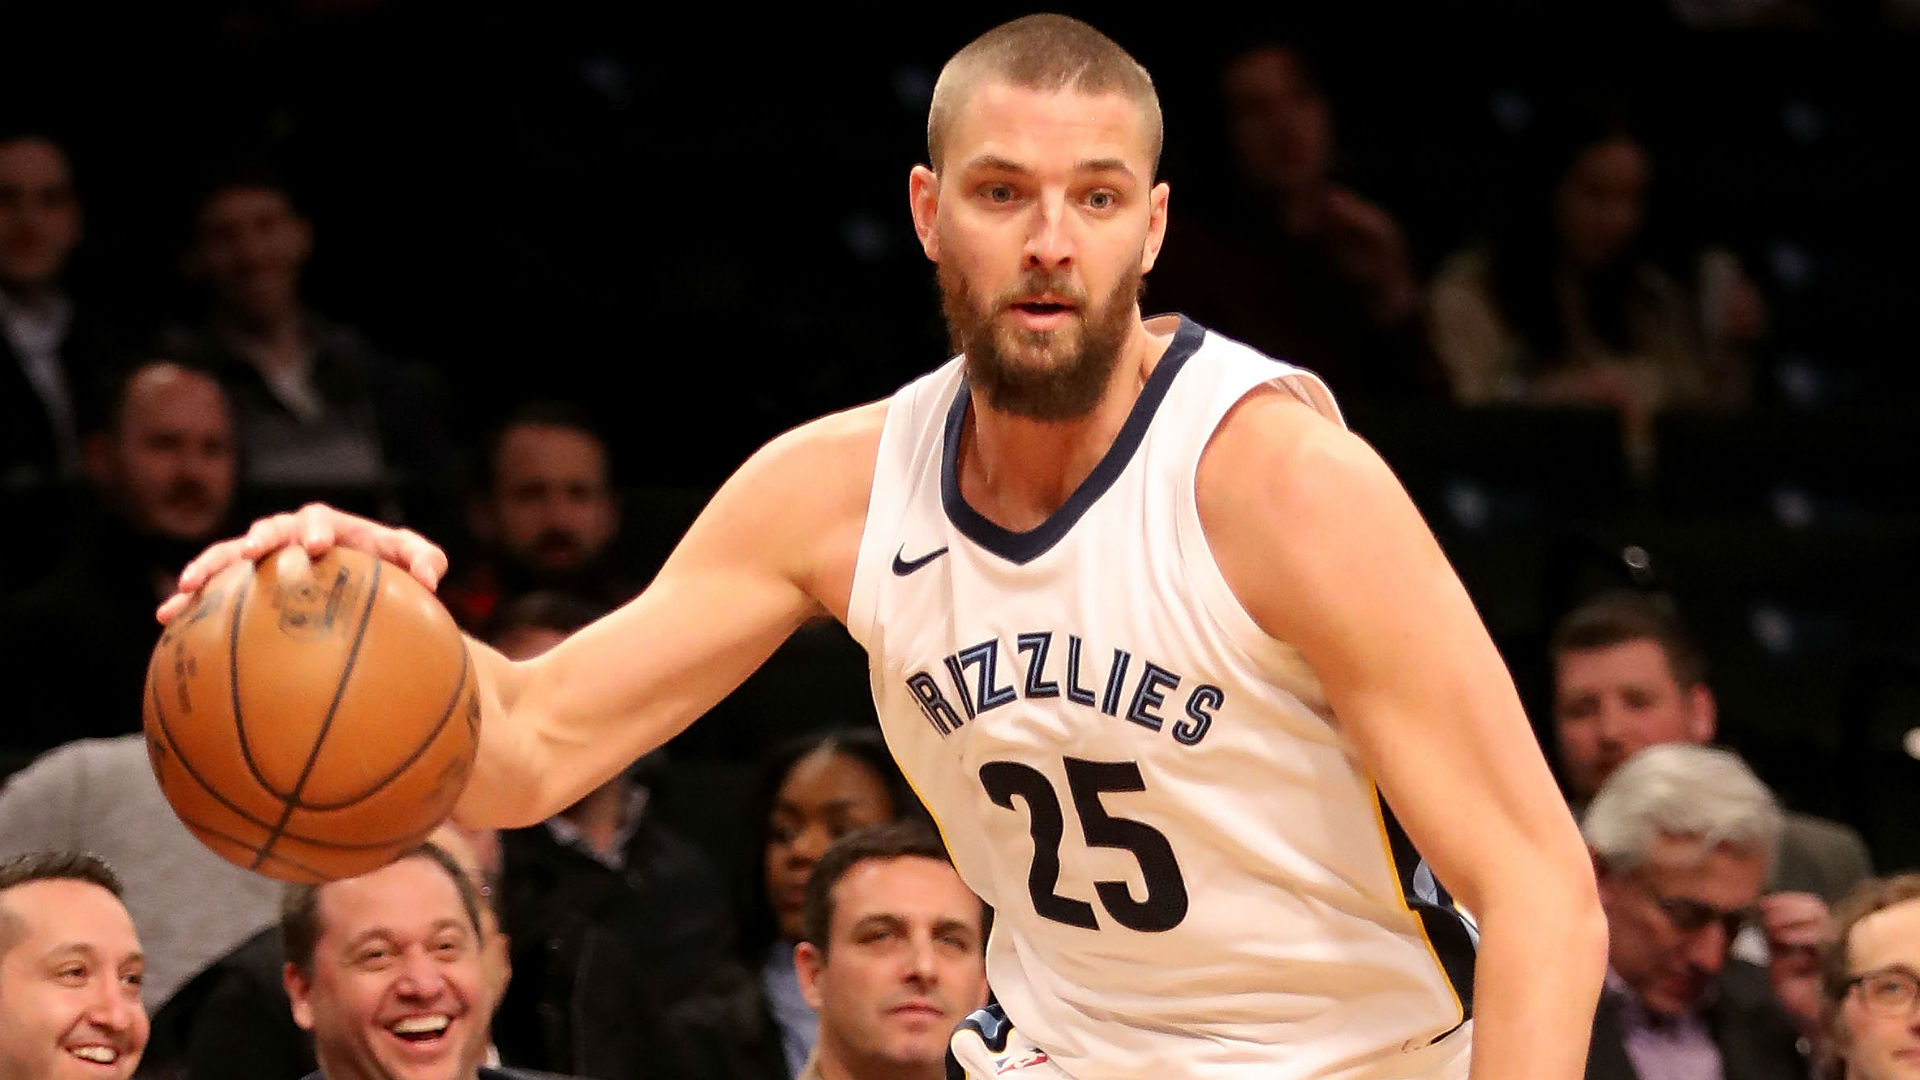 Chandler Parsons, Memphis Grizzlies agree to part ways